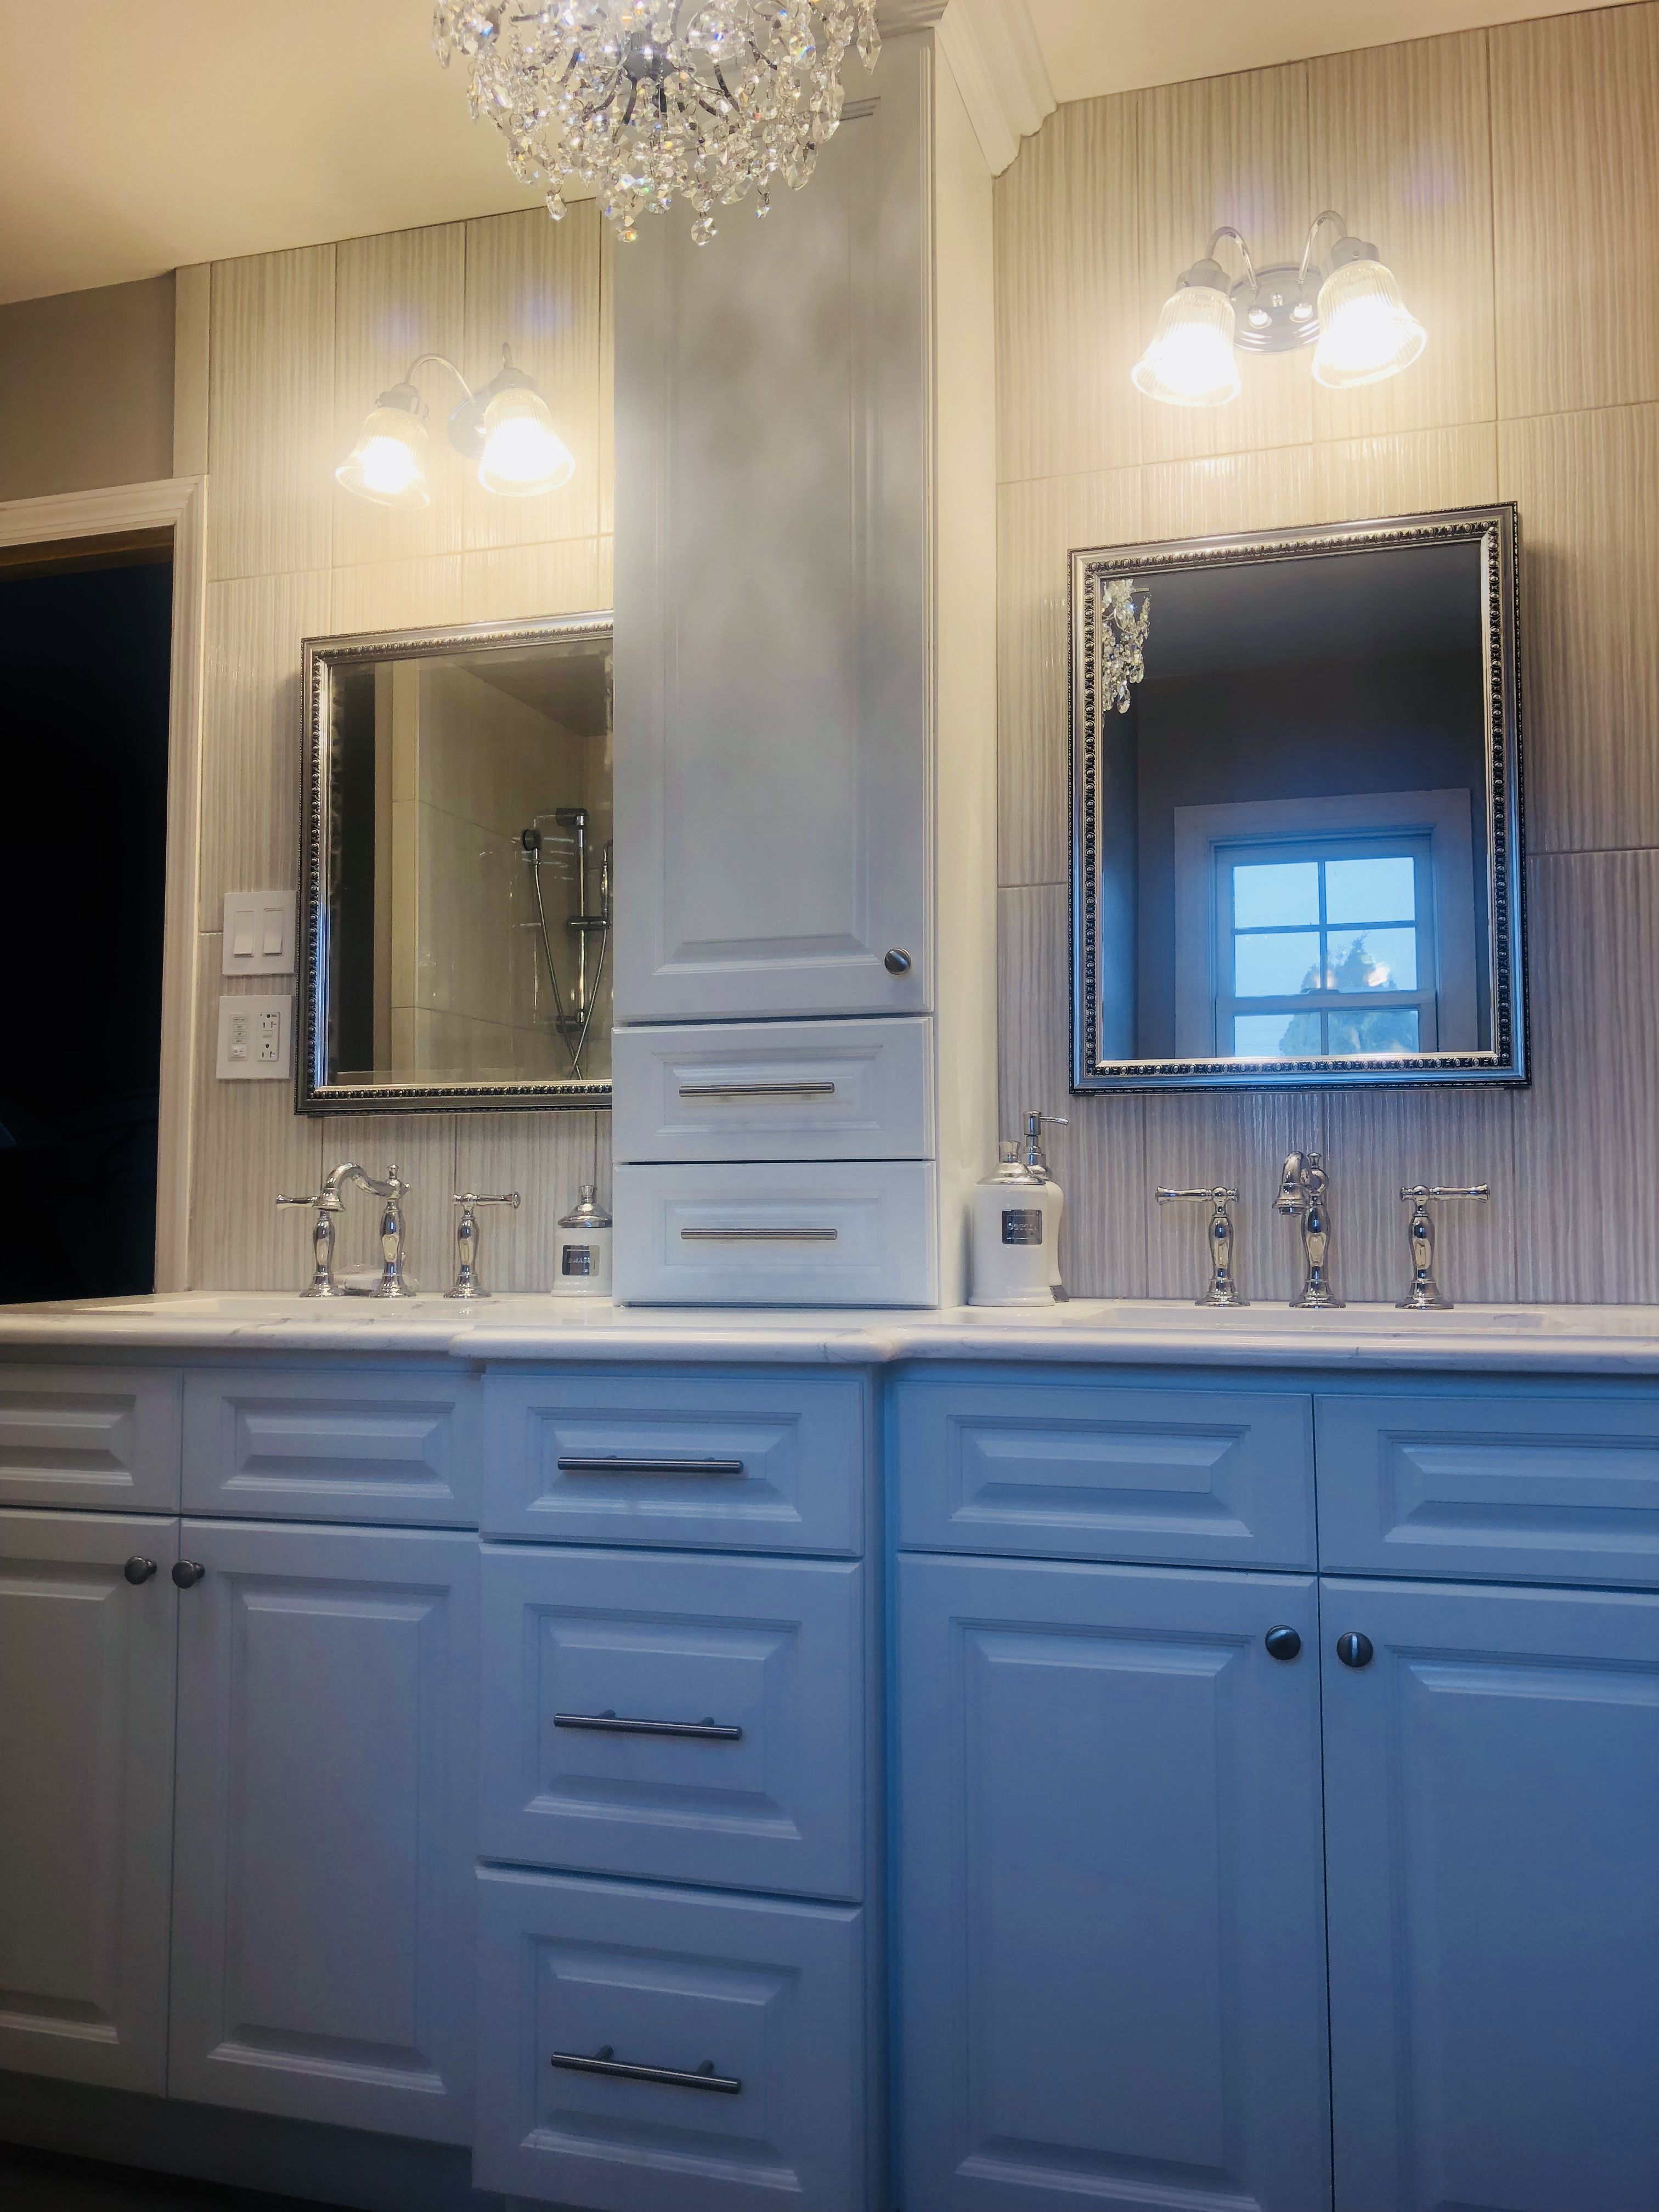 Double Sink Vanity With Center Tower Bathroom Inspiration Double Sink Vanity Master Bathroom